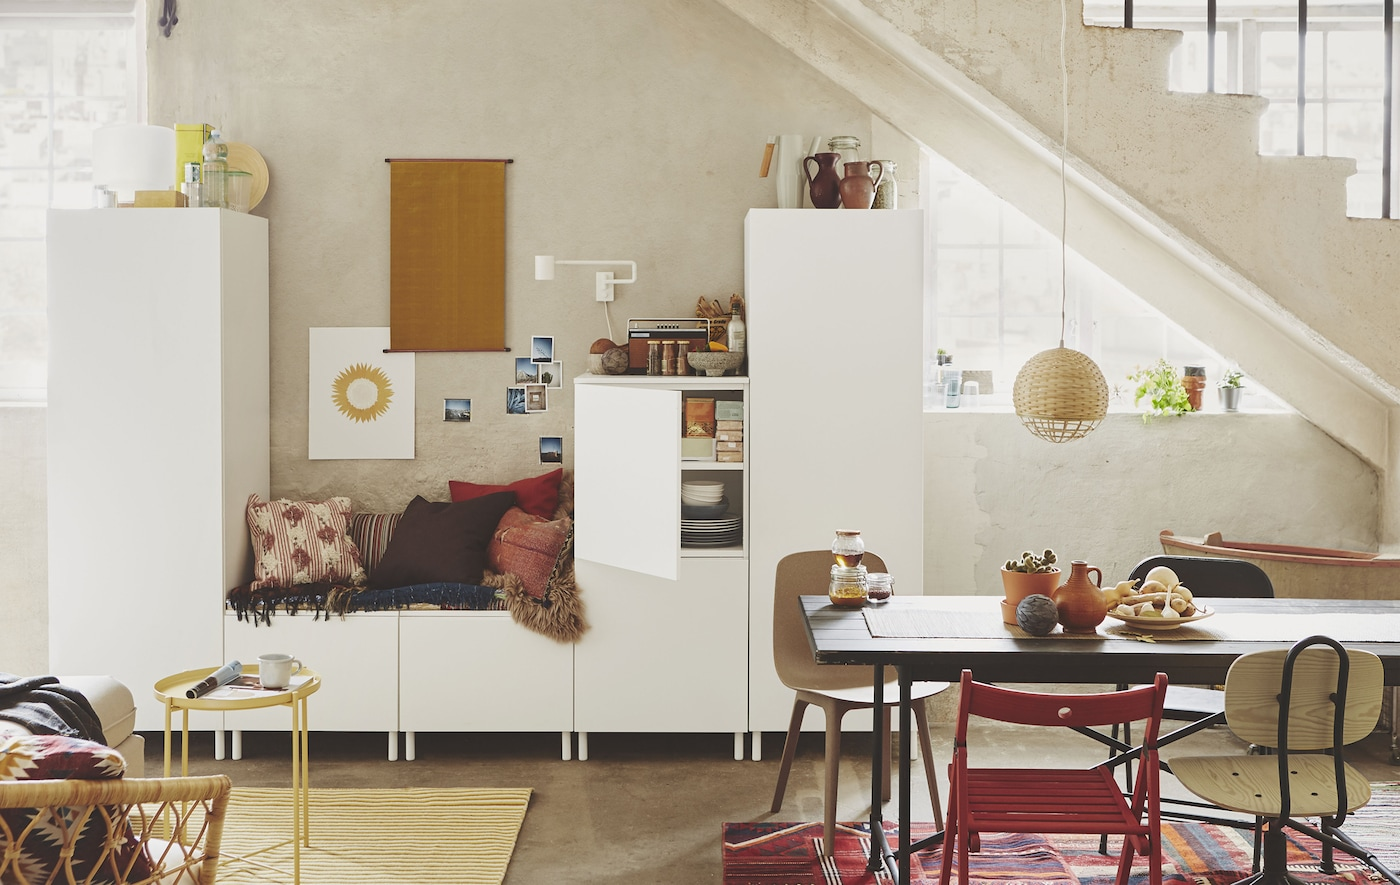 Modular white storage cabinets in an open-plan home.